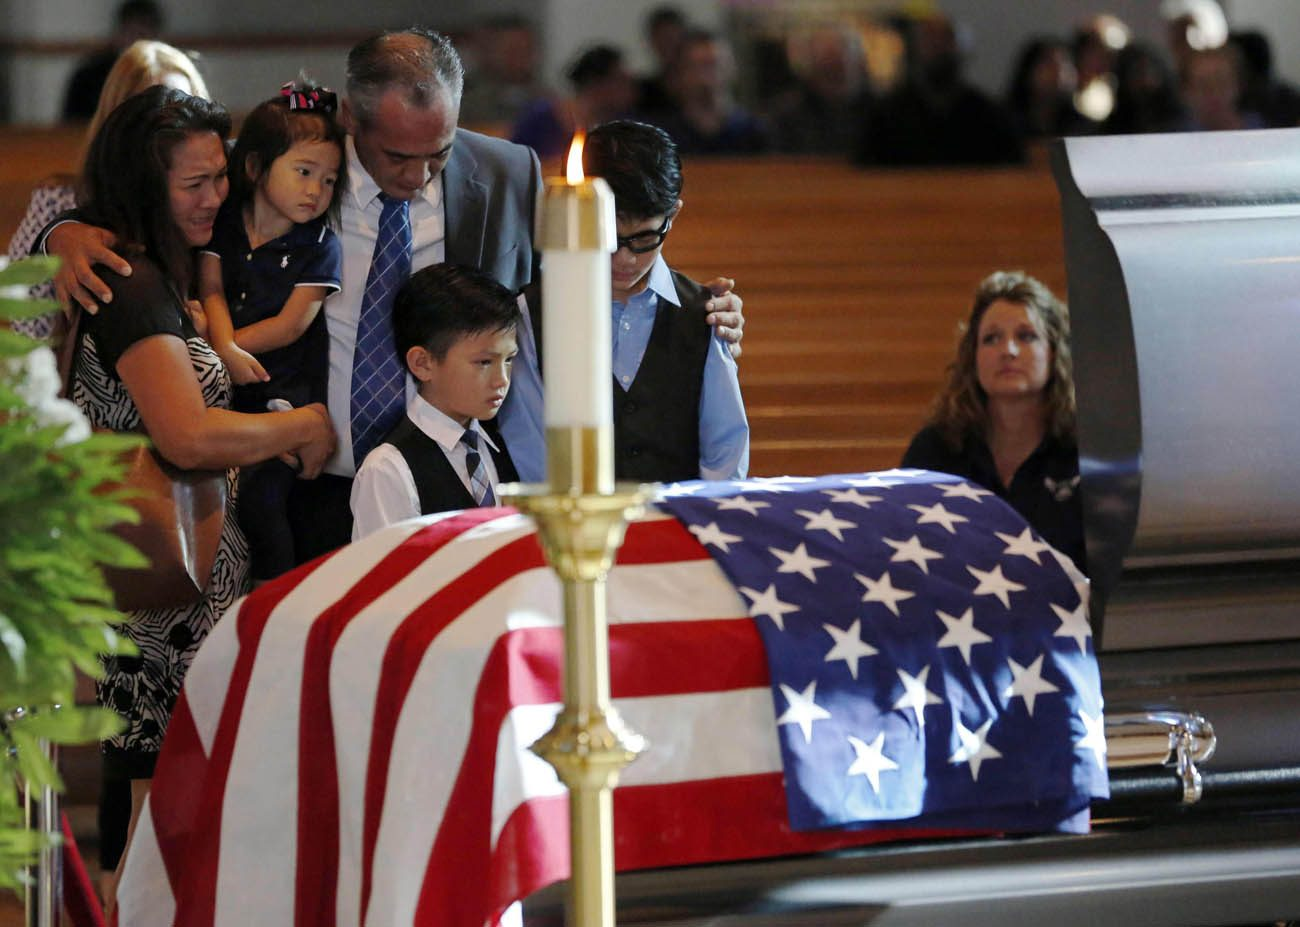 Billy Smith, brother of slain Dallas Police Sgt. Michael Smith, and his family grieve at the officer's casket during a July 12 visitation for him at Mary Immaculate Catholic Church in Farmers Branch, Texas. Smith, a member of the parish, was one of five officers killed when a gunman opened fire at a July 7 protest in downtown Dallas. (CNS photo/G.J. McCarthy, The Dallas Morning News pool via Reuters)